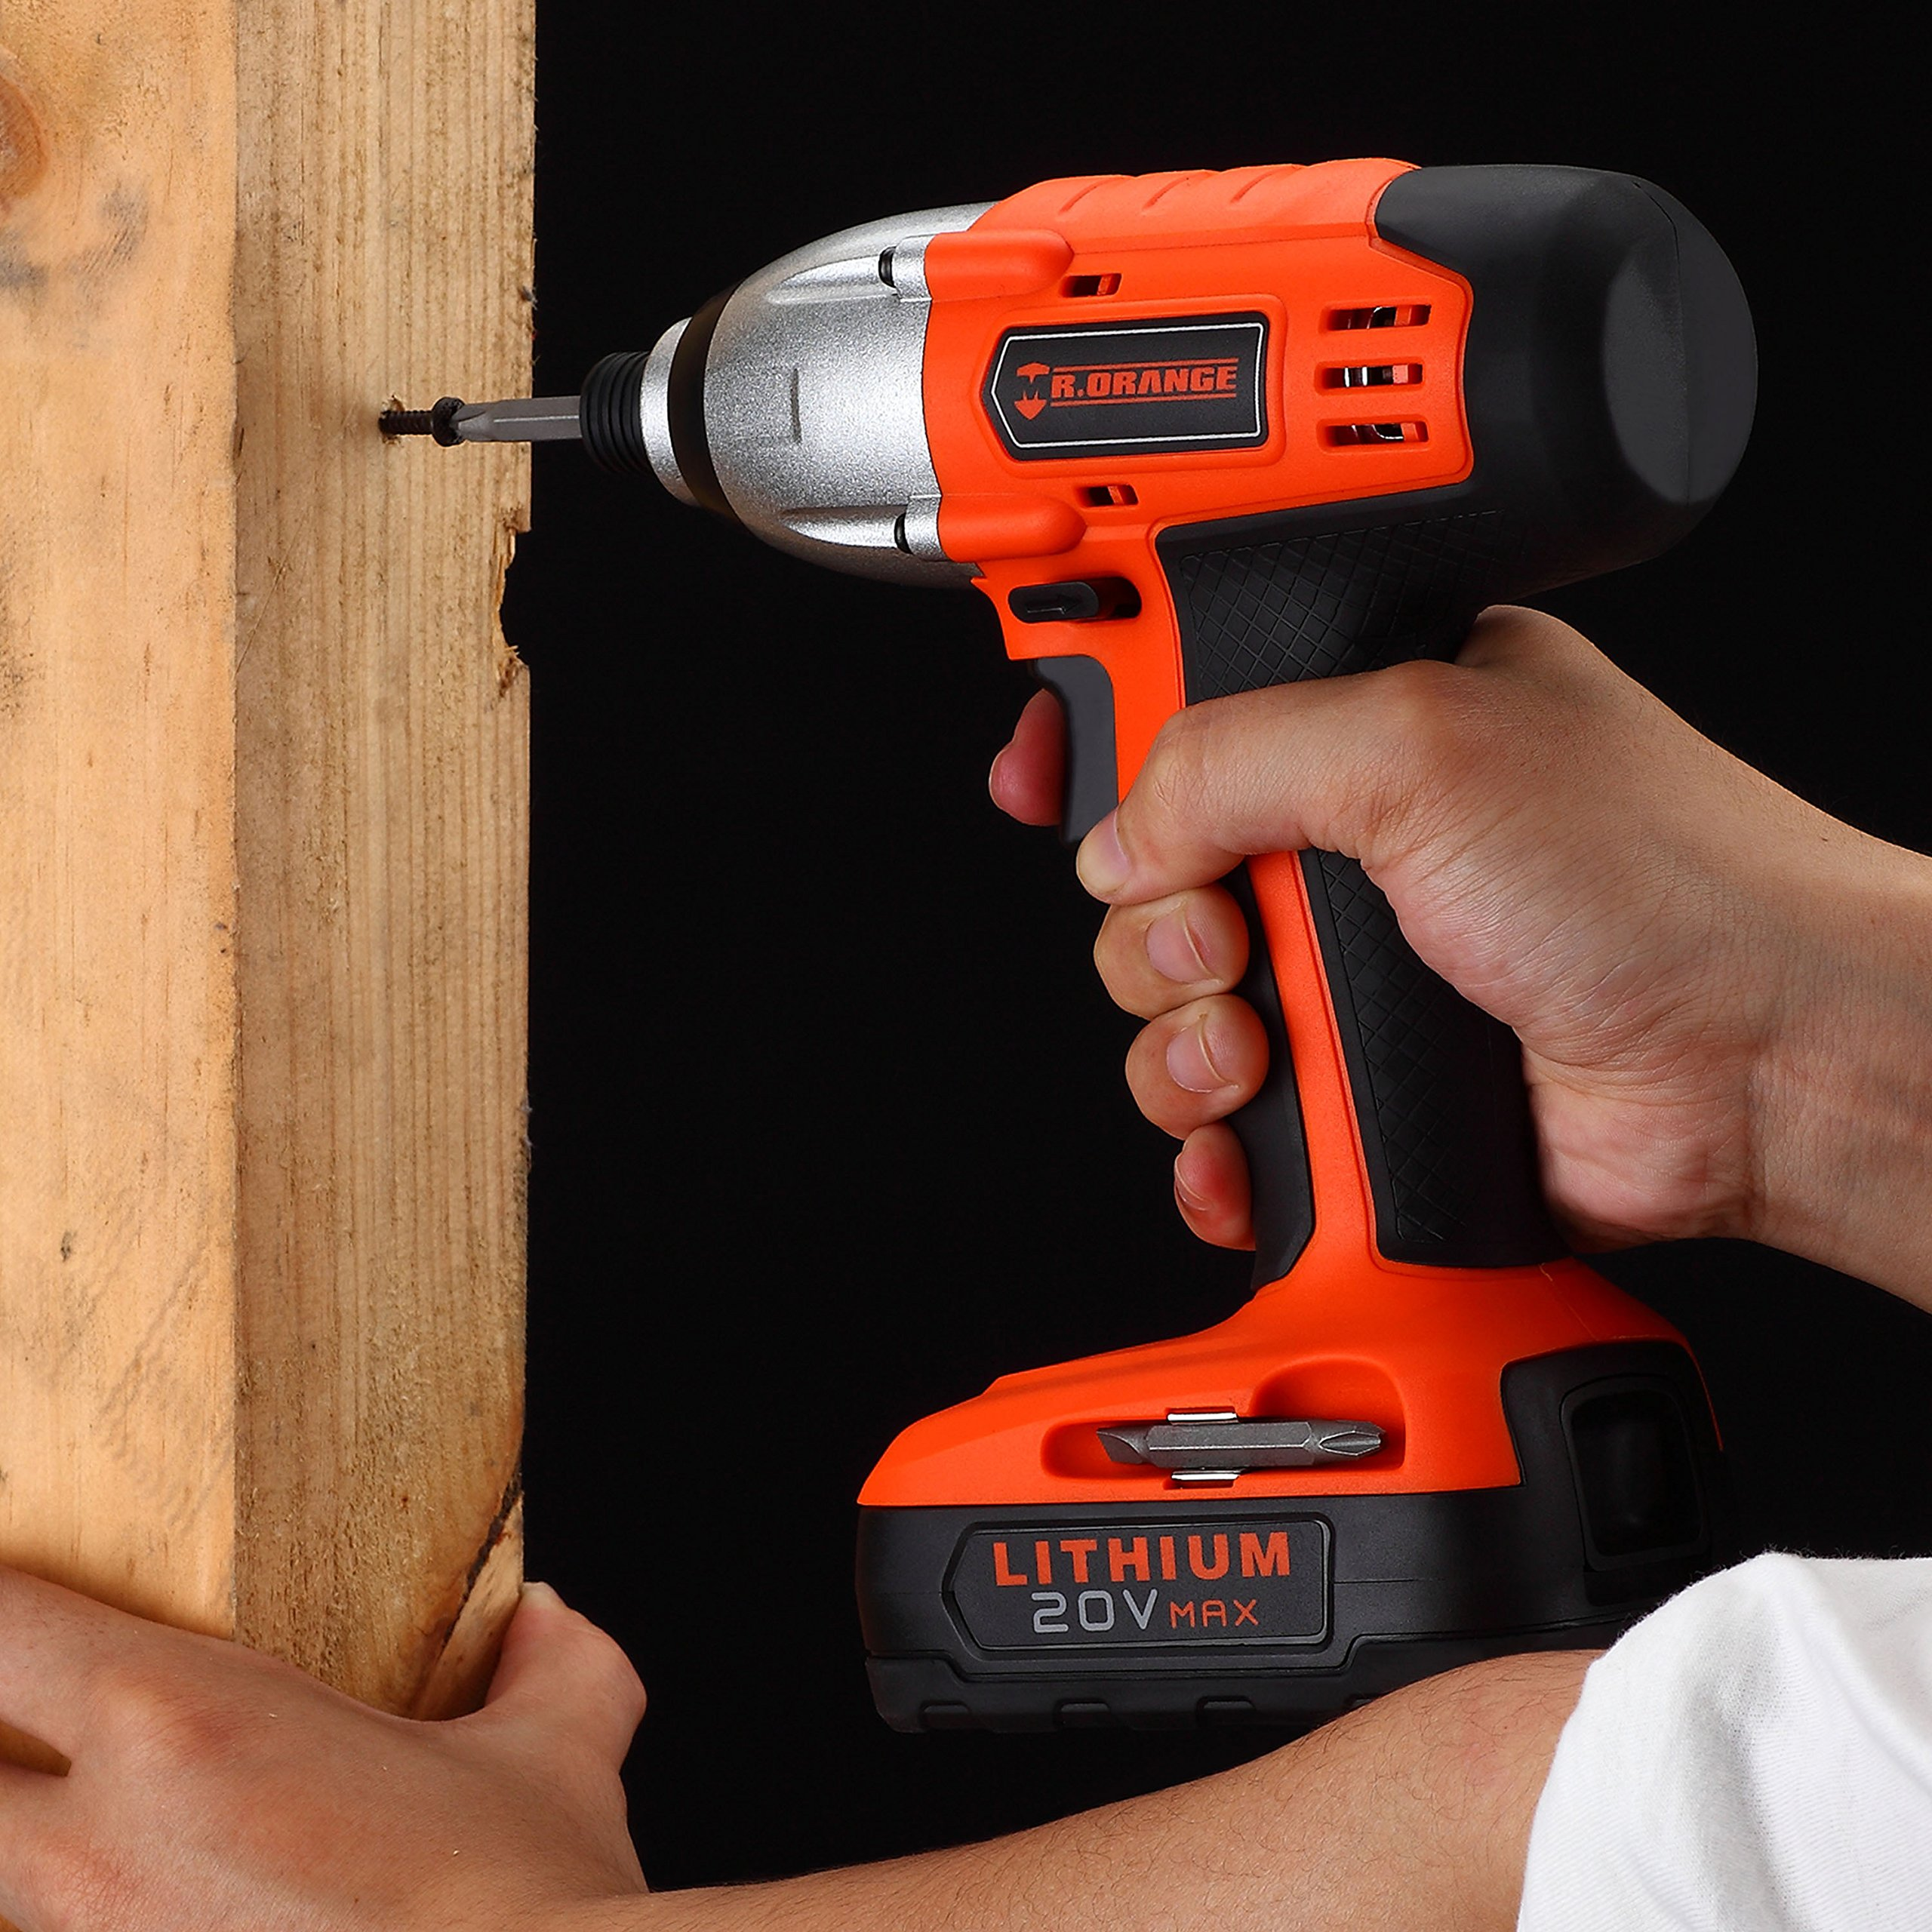 Mr.Orange 1/4 Inch 20V Lithium-Ion Cordless Impact Driver Kit with Quick Charger and Battery Includes Durable Gloves 2 pcs socket driver bits and Soft Tool Bag by Mr.Orange (Image #6)